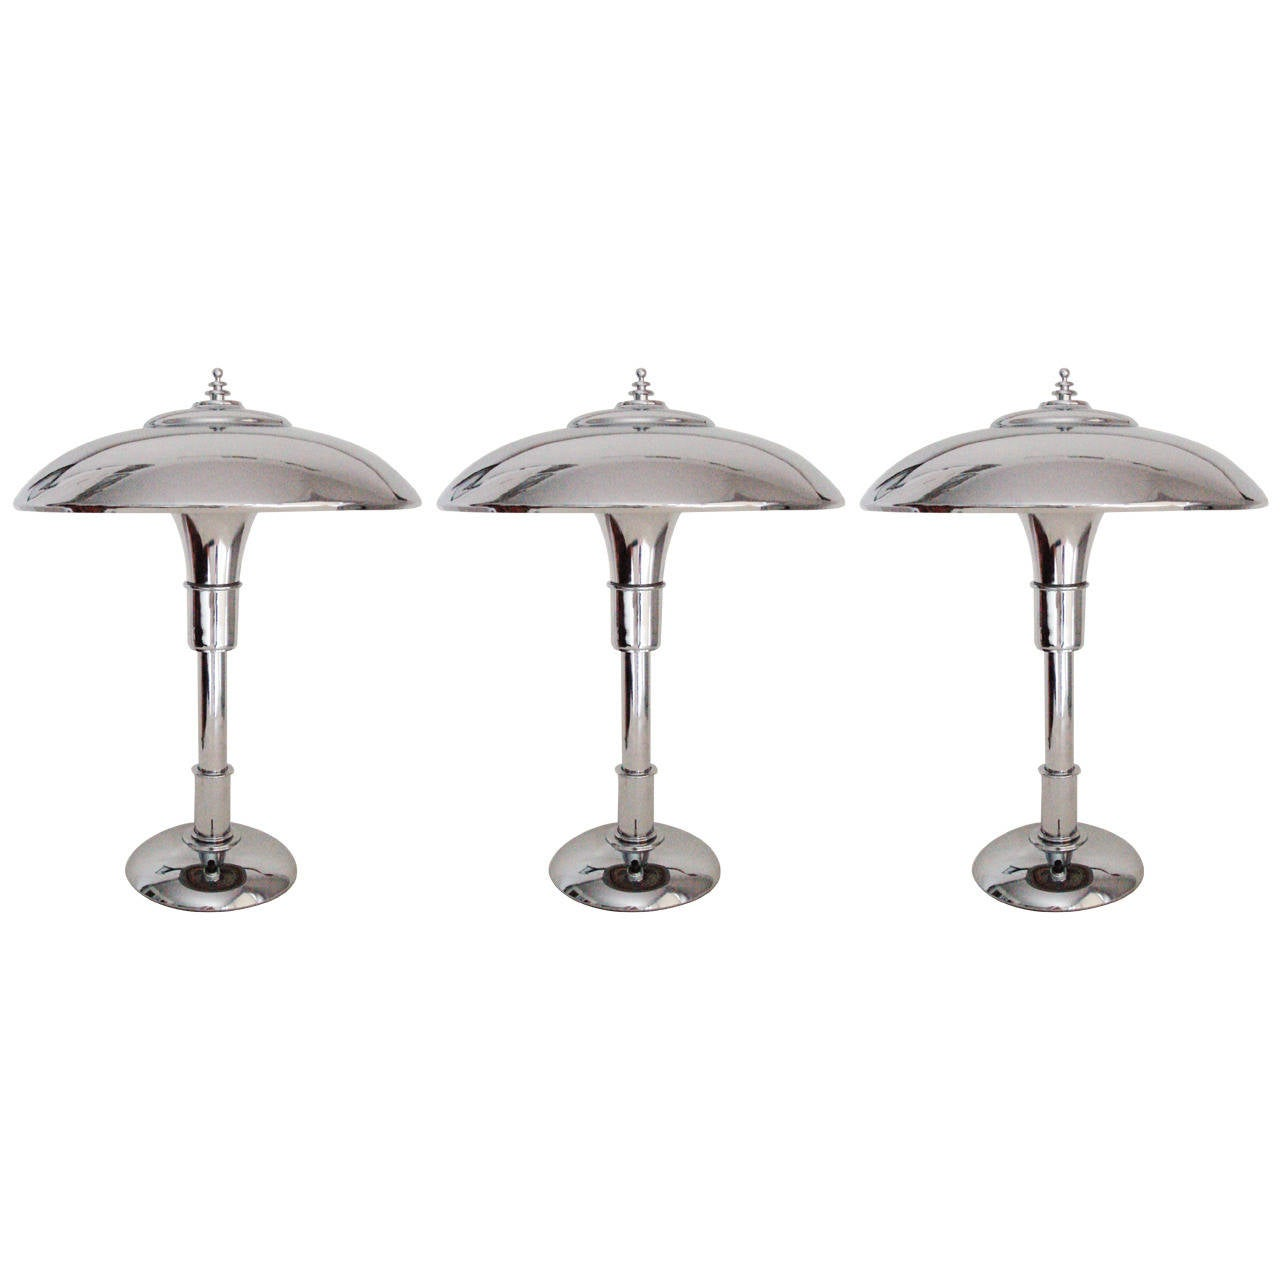 Three iconic american art deco chrome plated guardsman for Iconic design lamps